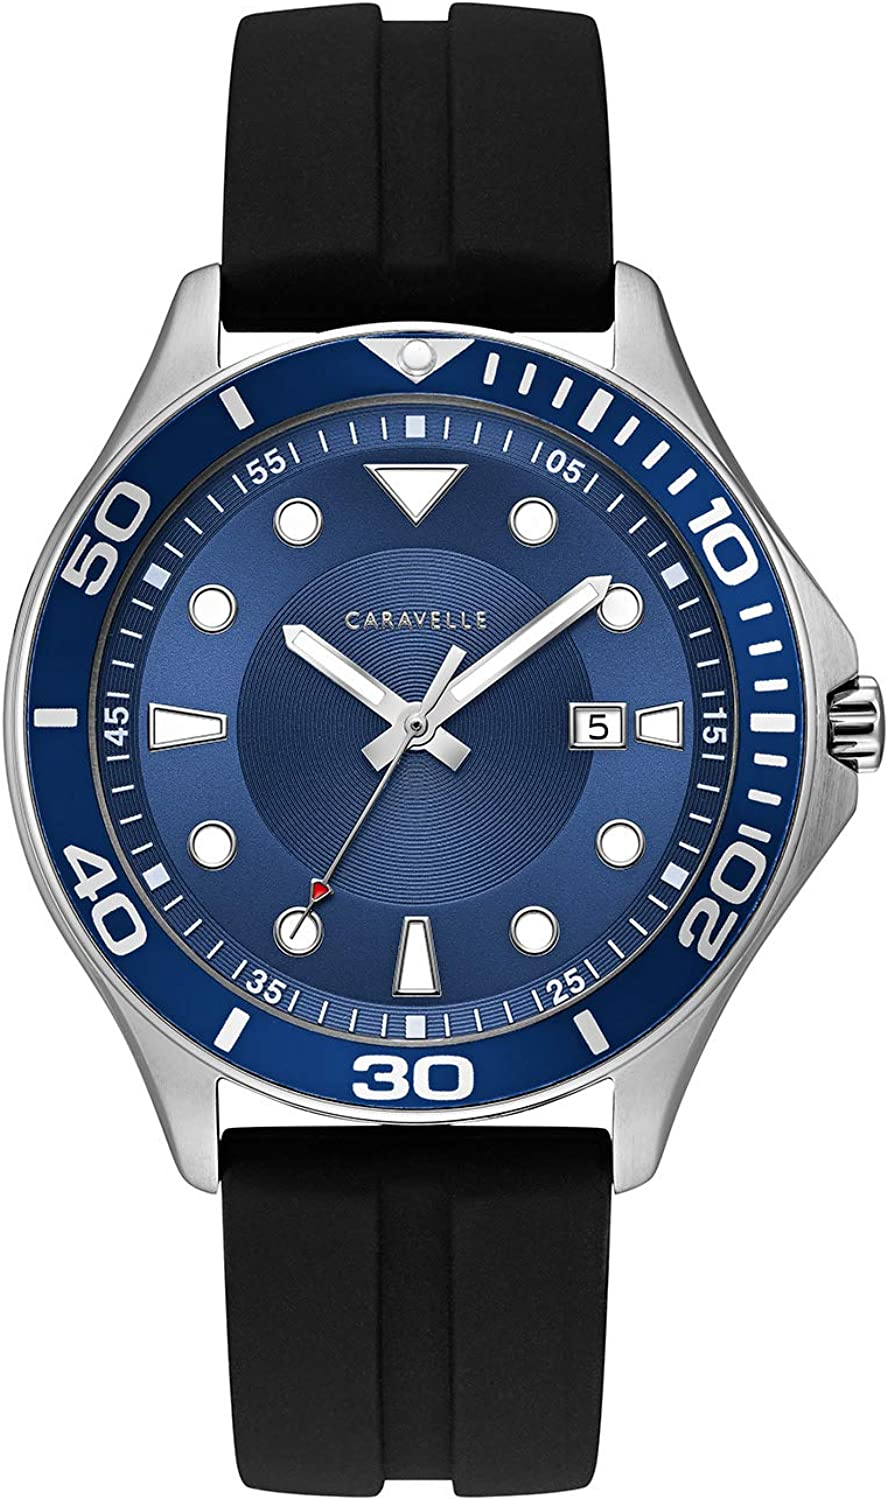 Caravelle Designed by Bulova Men s Stainless Steel Quartz Watch with Silicone Strap, Black, 18 Model 43B155